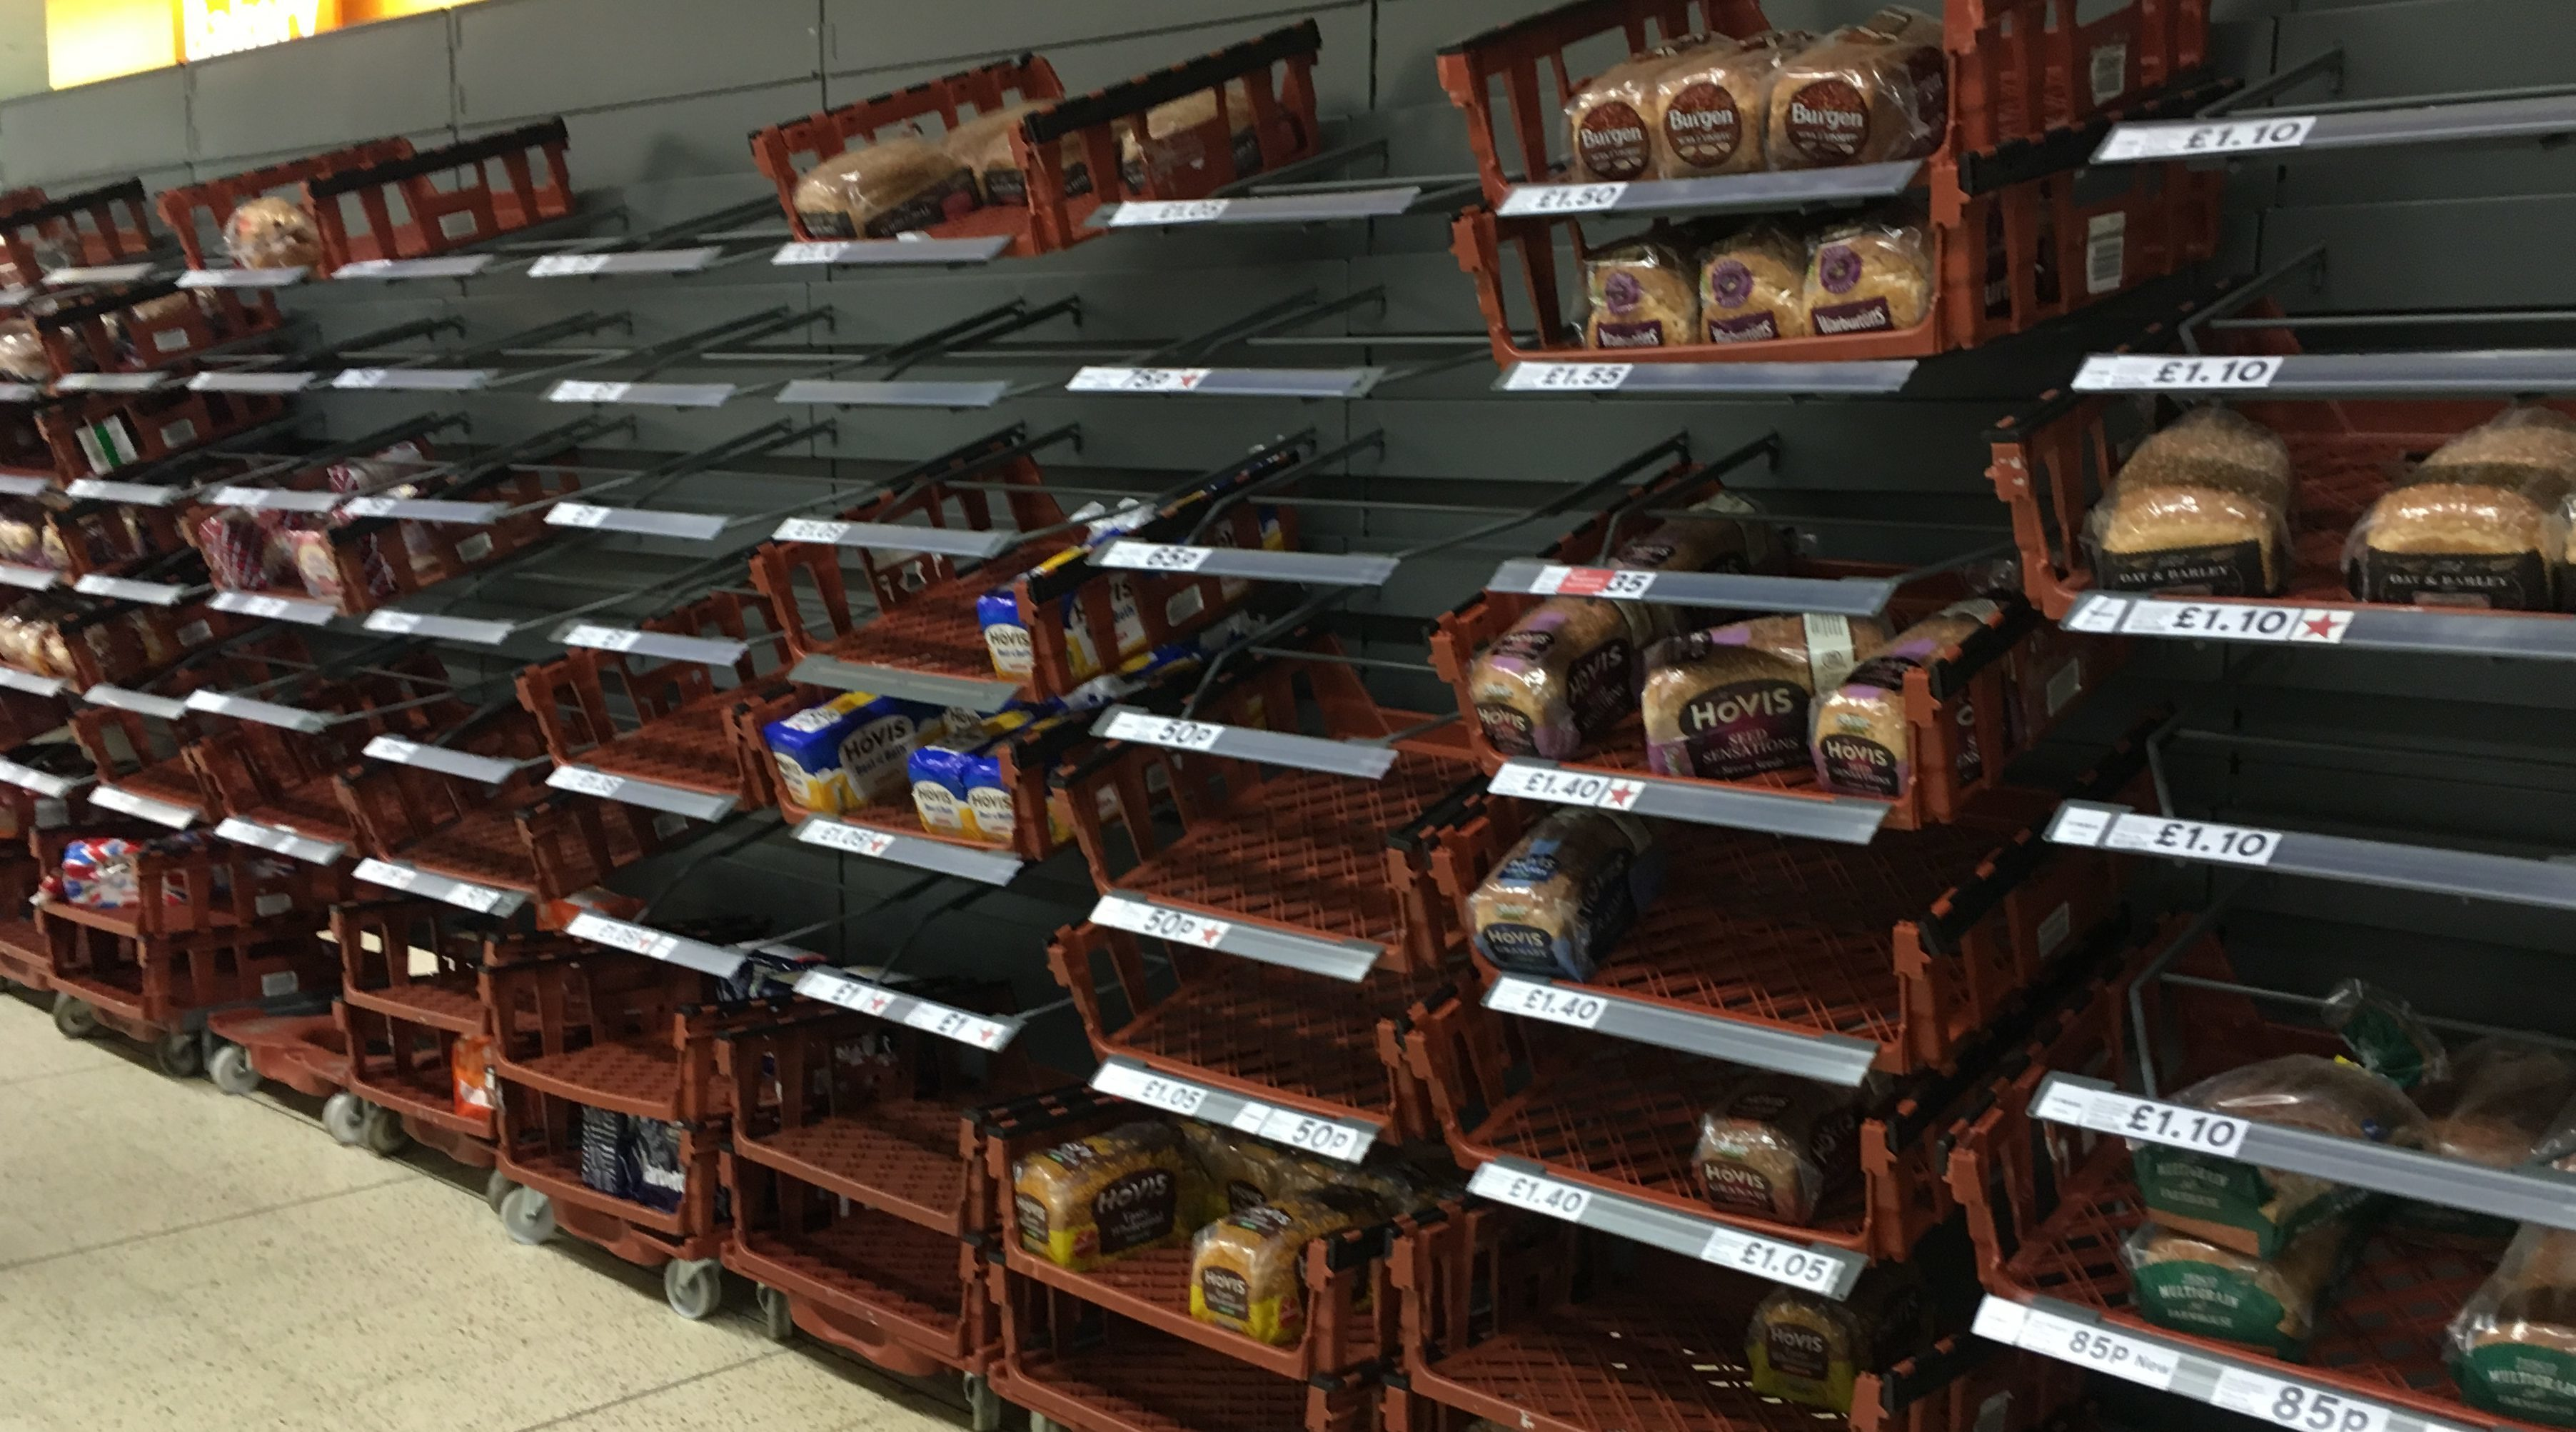 Short supplies of bread in Tesco, Perth city centre